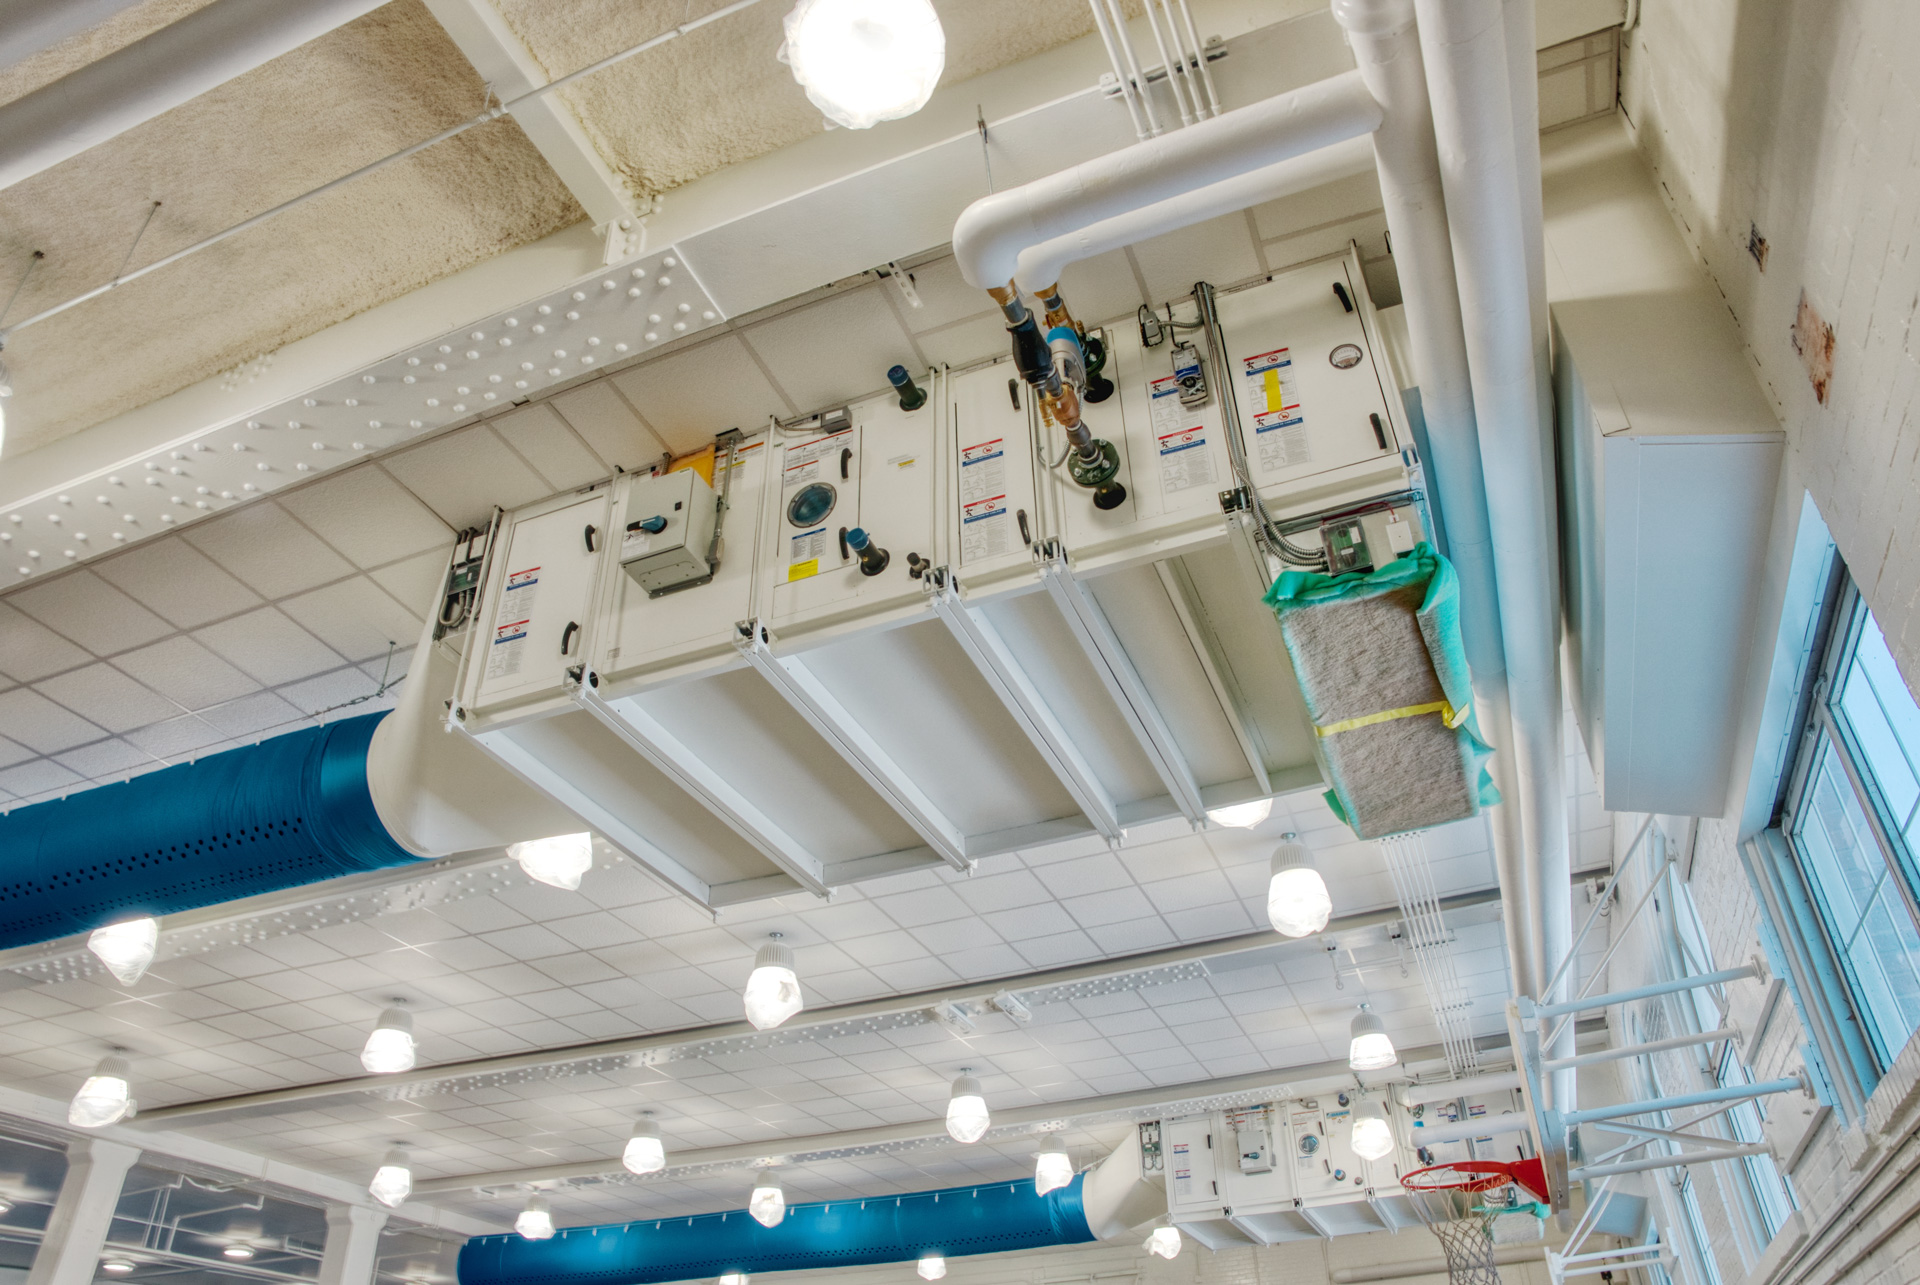 Upgrading your HVAC can lower energy consumption in commercial buildings.